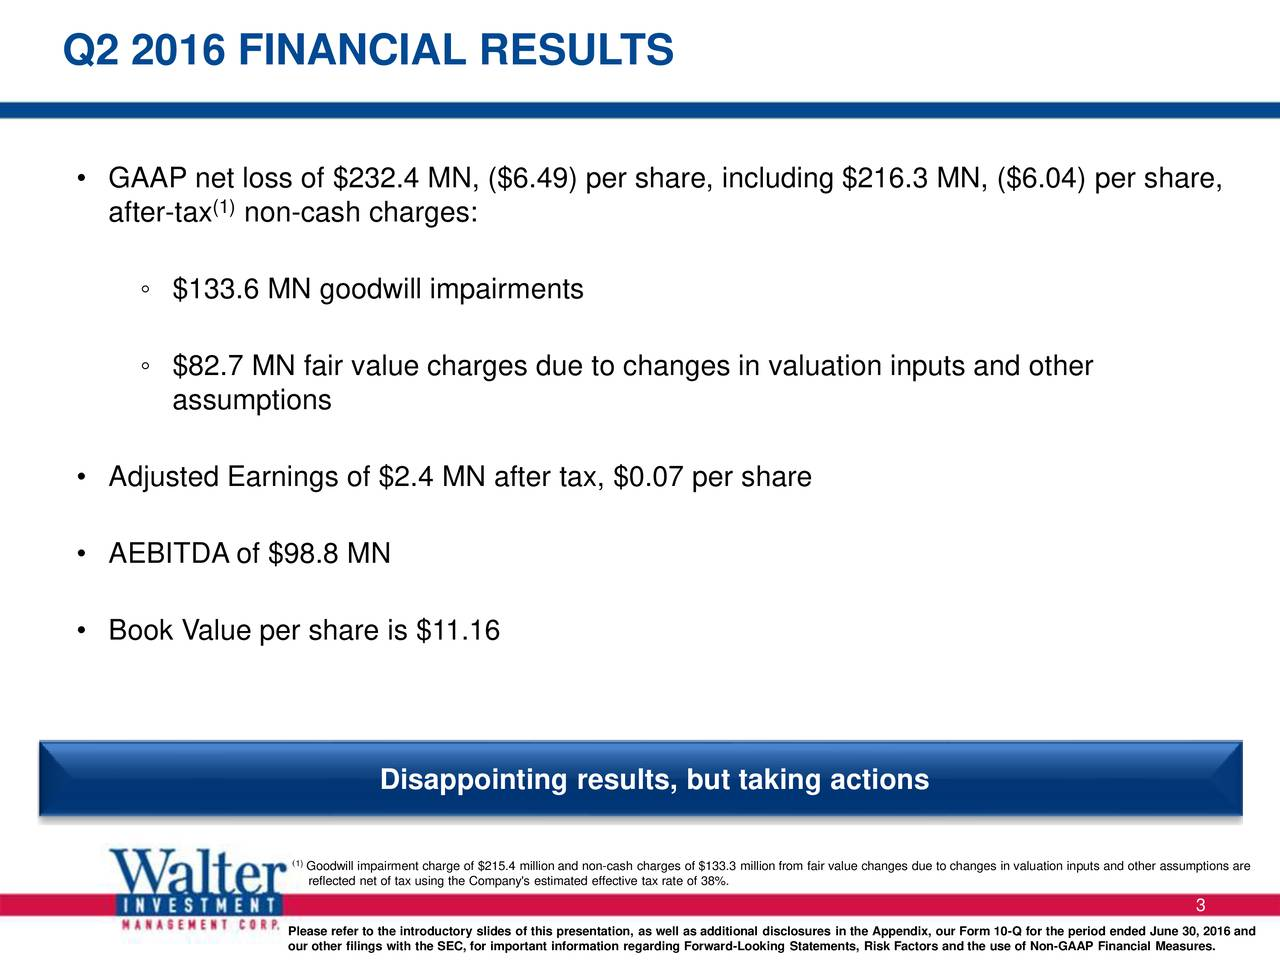 GAAP net loss of $232.4 MN, ($6.49) per share, including $216.3 MN, ($6.04) per share, after-tax (1)non-cash charges: $133.6 MN goodwill impairments $82.7 MN fair value charges due to changes in valuation inputs and other assumptions Adjusted Earnings of $2.4 MN after tax, $0.07 per share AEBITDA of $98.8 MN Book Value per share is $11.16 Disappointing results, but taking actions 1Greflected net of tax using the Company's estimated effective tax rate of 38%.llion from fair value changes due to changes in valuation inputs and other assumptions are 3 Please refer to the introductory slides of this presentation, as well as additional disclosures in the Appendix, our Form 10-Q for the period ended June 30, 2016 and